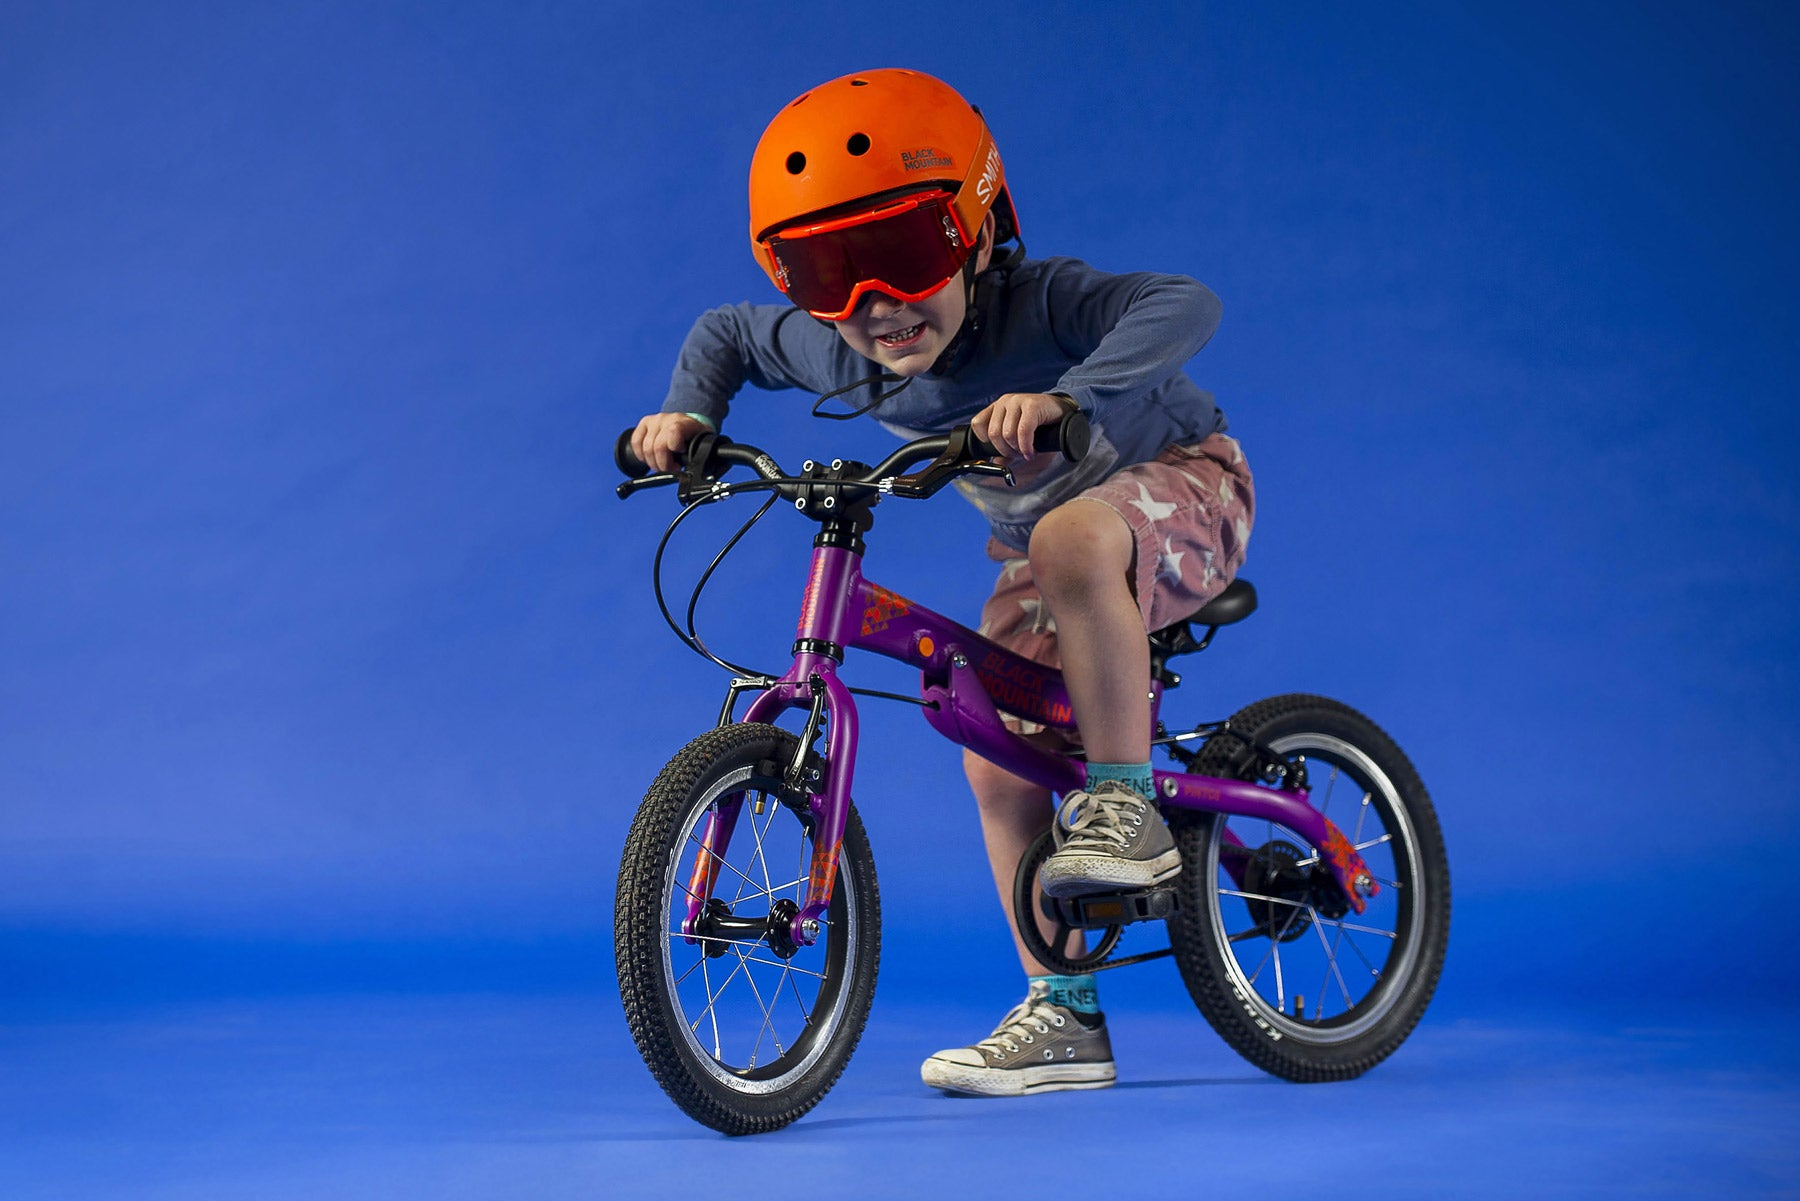 Young boy on bike in helmet and goggles